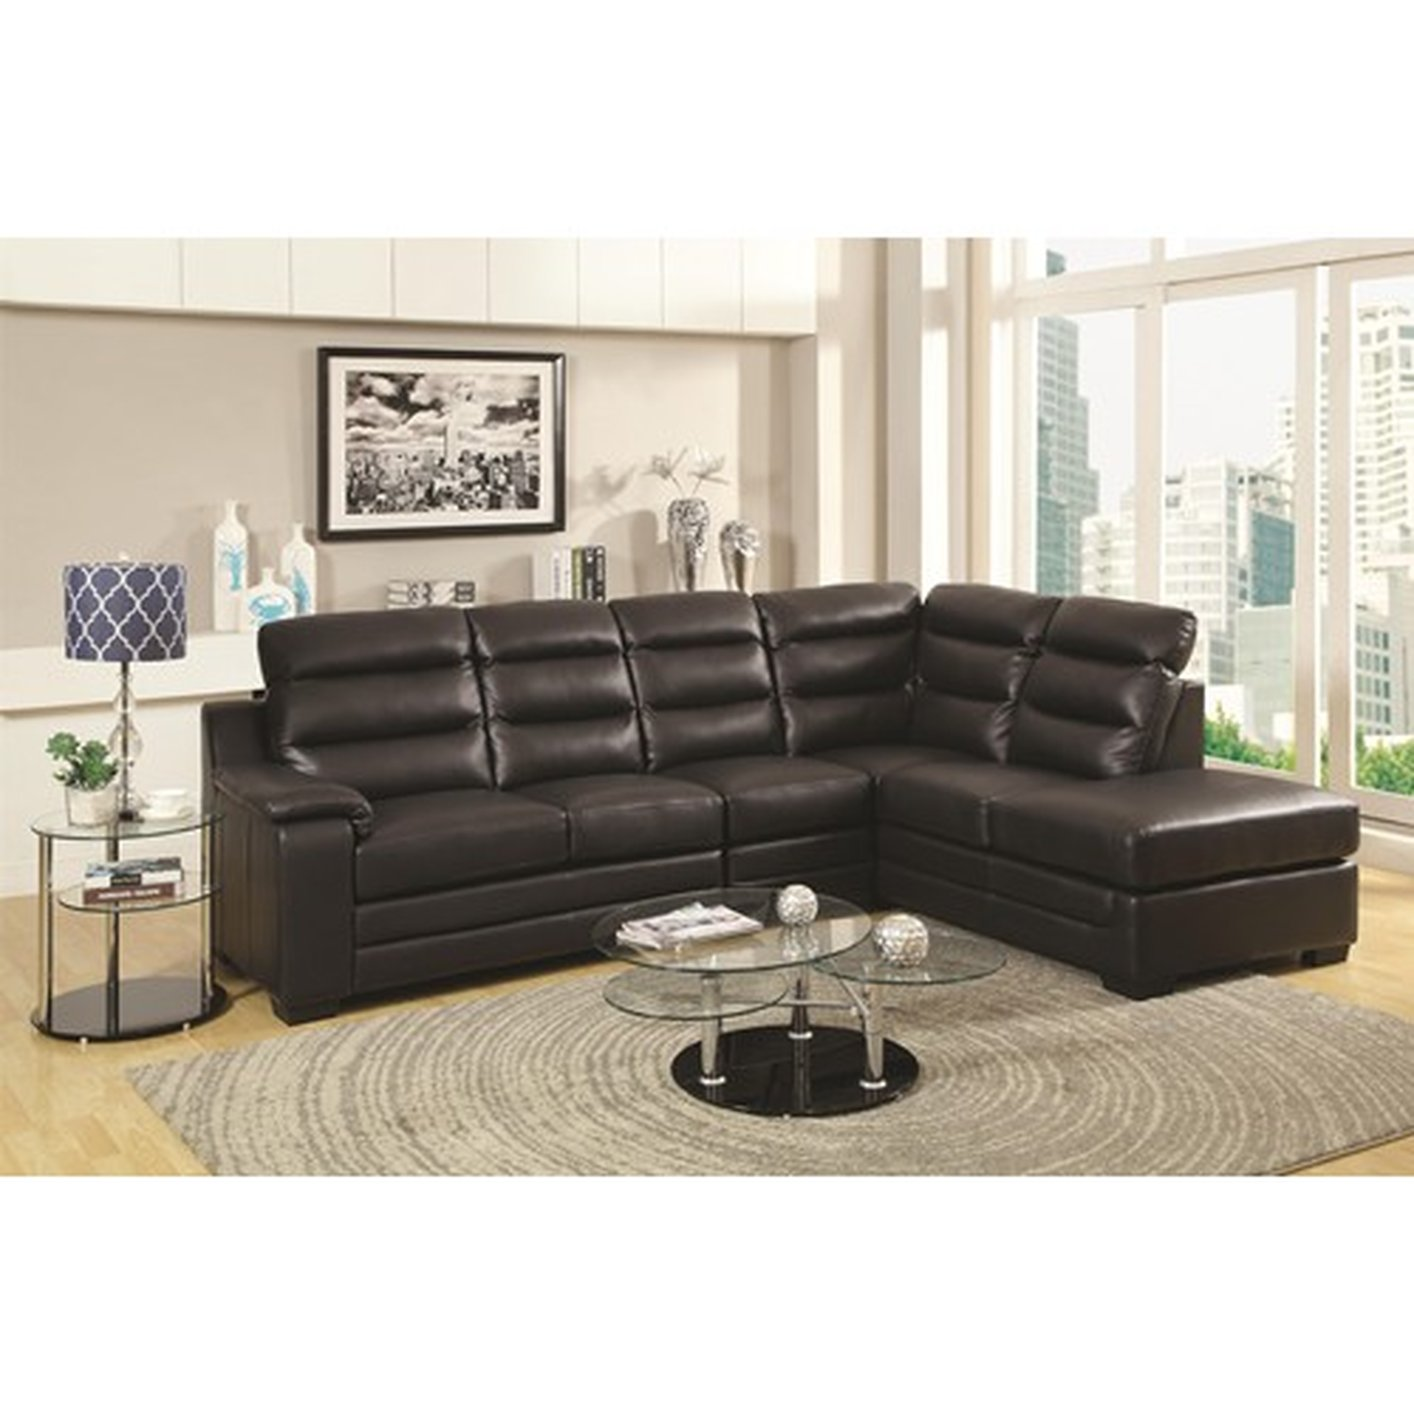 Charming black leather sectional for elegant living room design with black leather sectional sofa